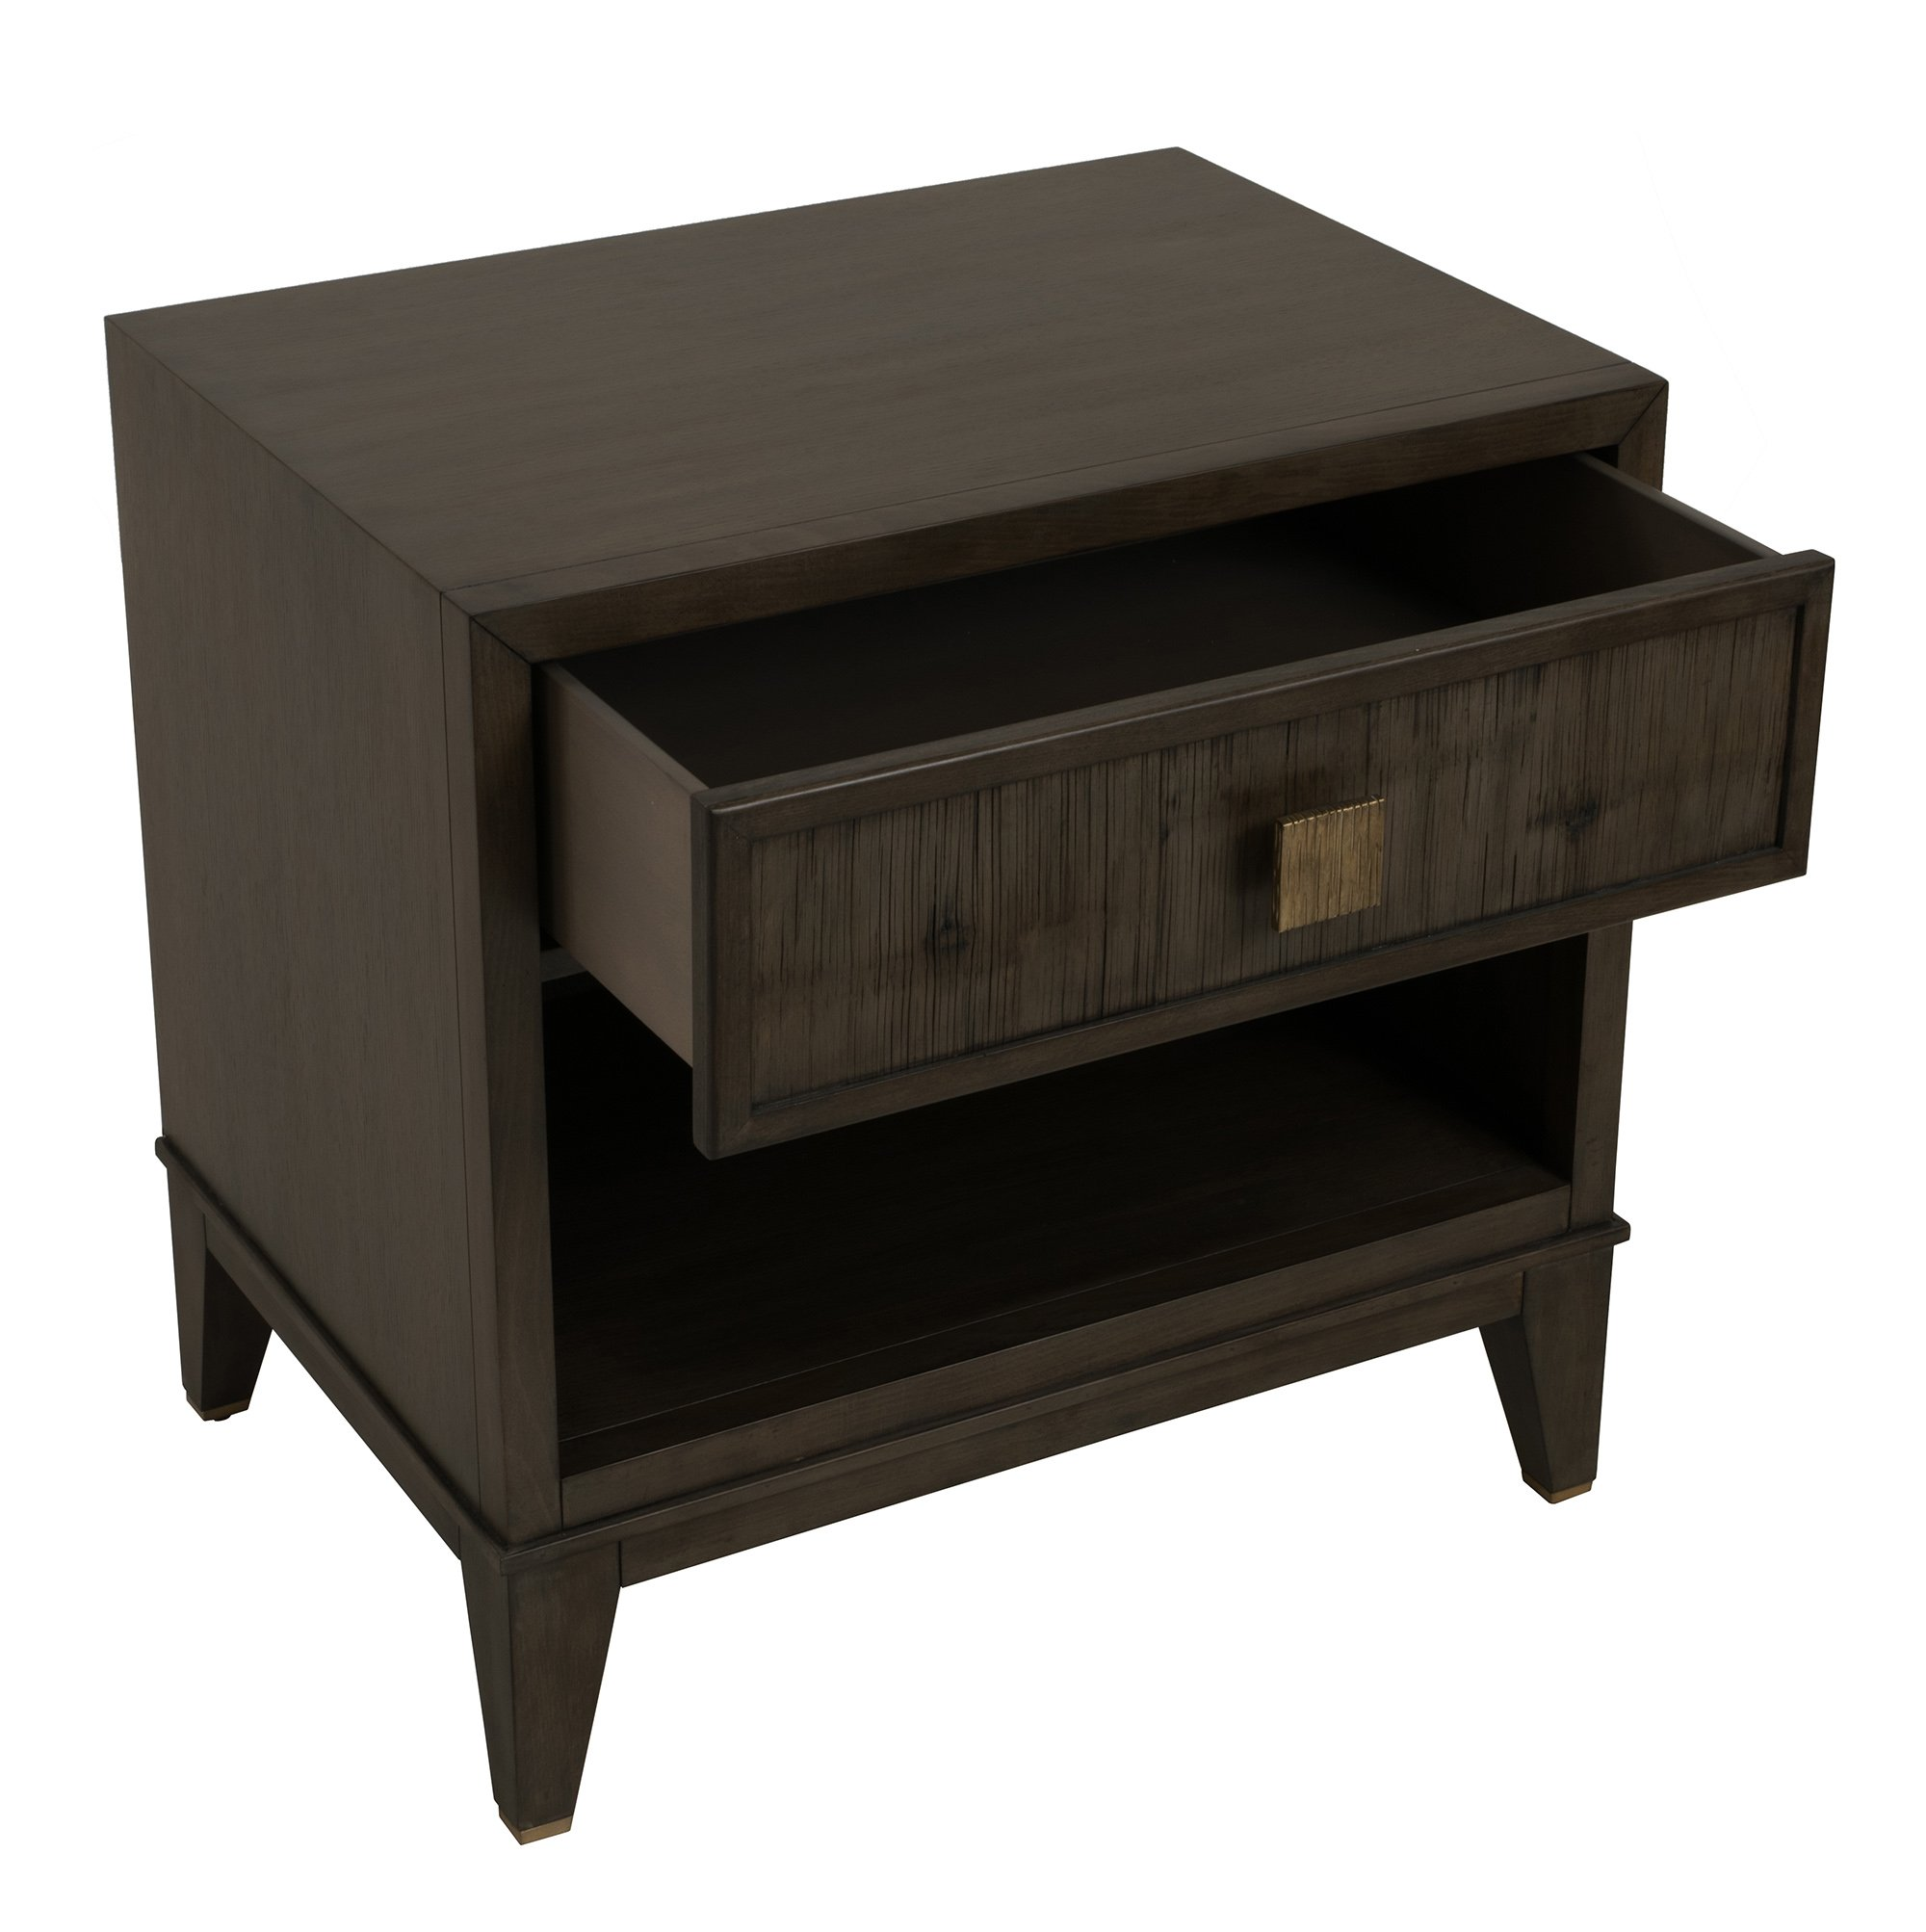 curate home collection tables accent table collections carlyle bamboo nightstand furniture tall black mango end matching lamps very small west elm bliss sofa target curtain rods